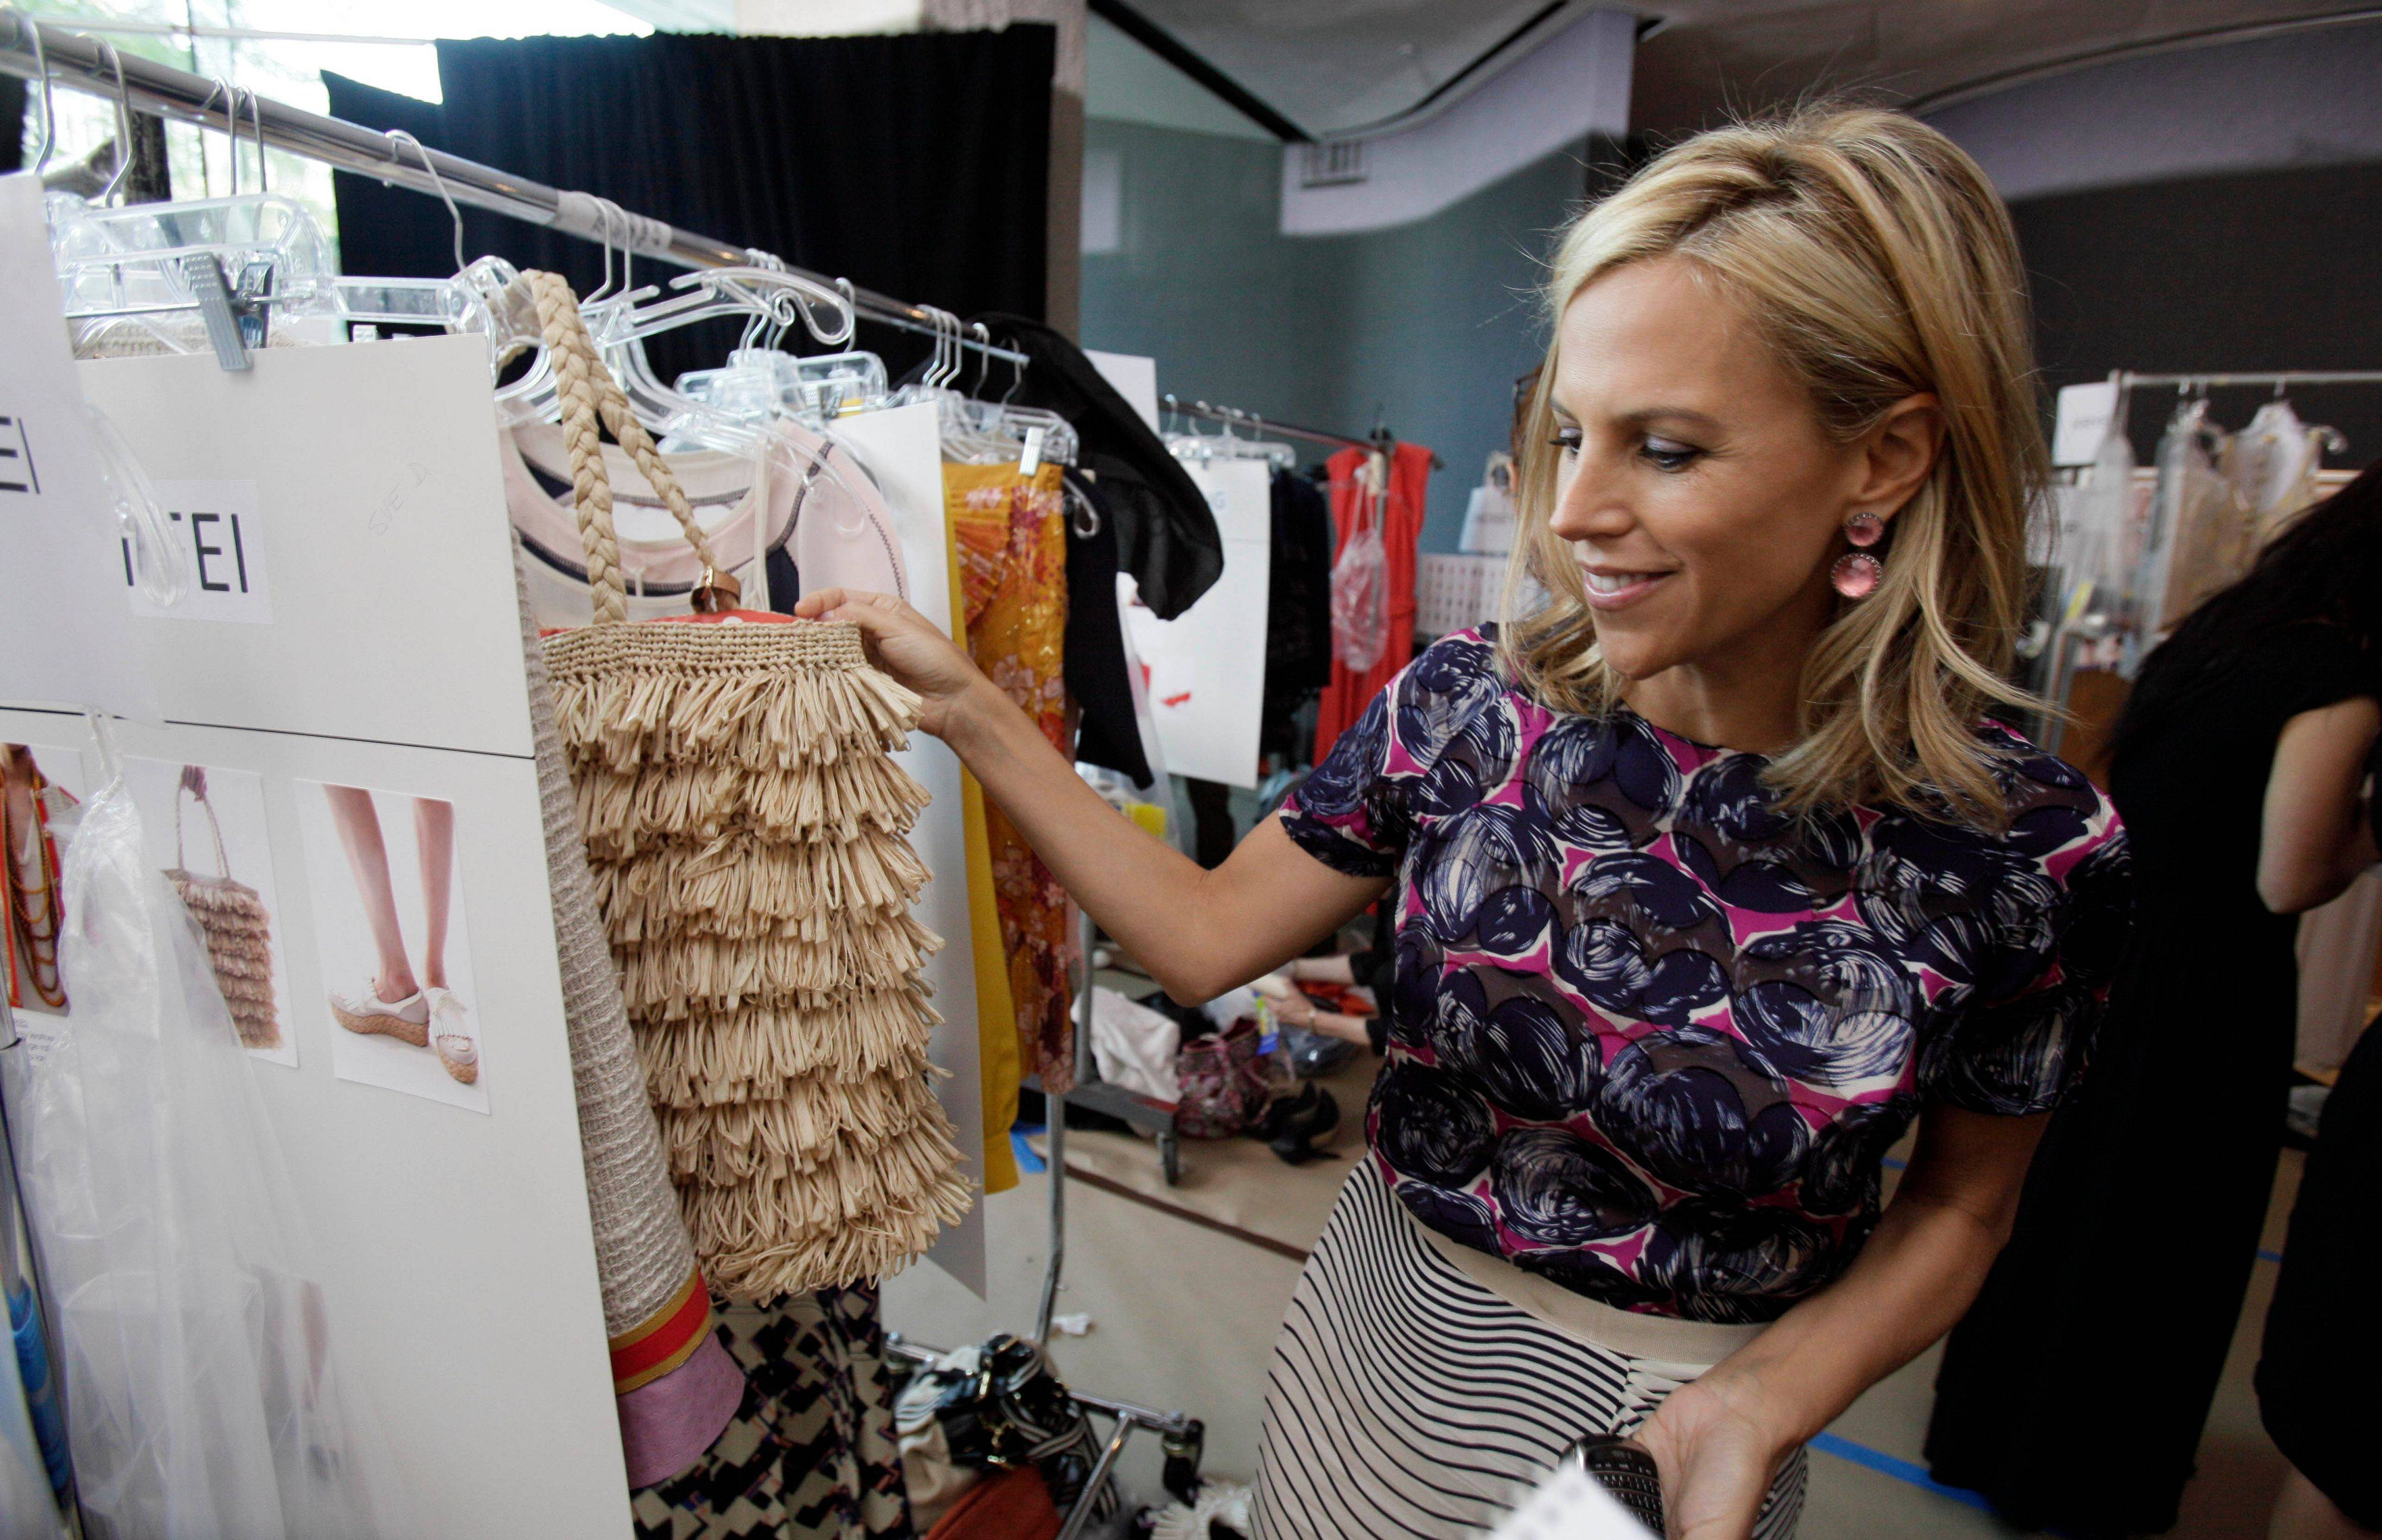 Designer Tory Burch looks over her designs backstage before her spring 2012 collection is modeled during Fashion Week in New York, Tuesday, Sept. 13, 2011.